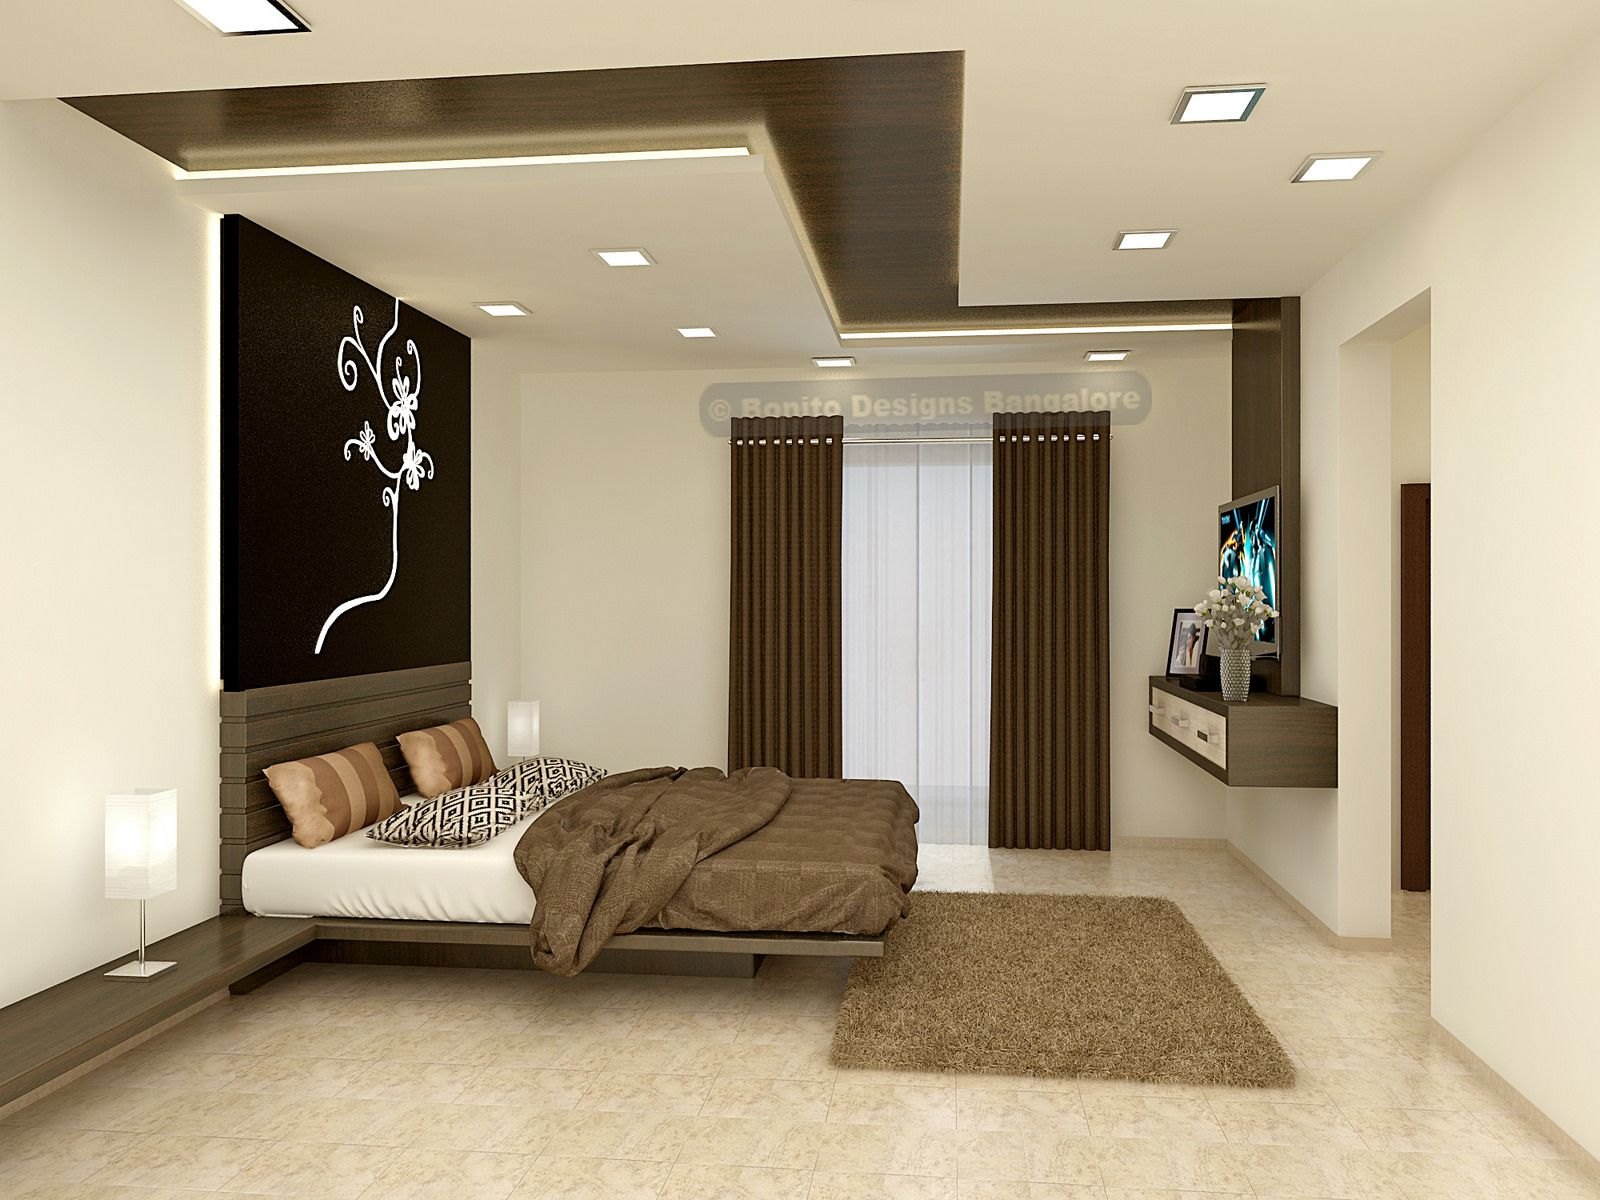 Sandepmbr 1 ceilings bedrooms and ceiling for Modern ceiling design 2017